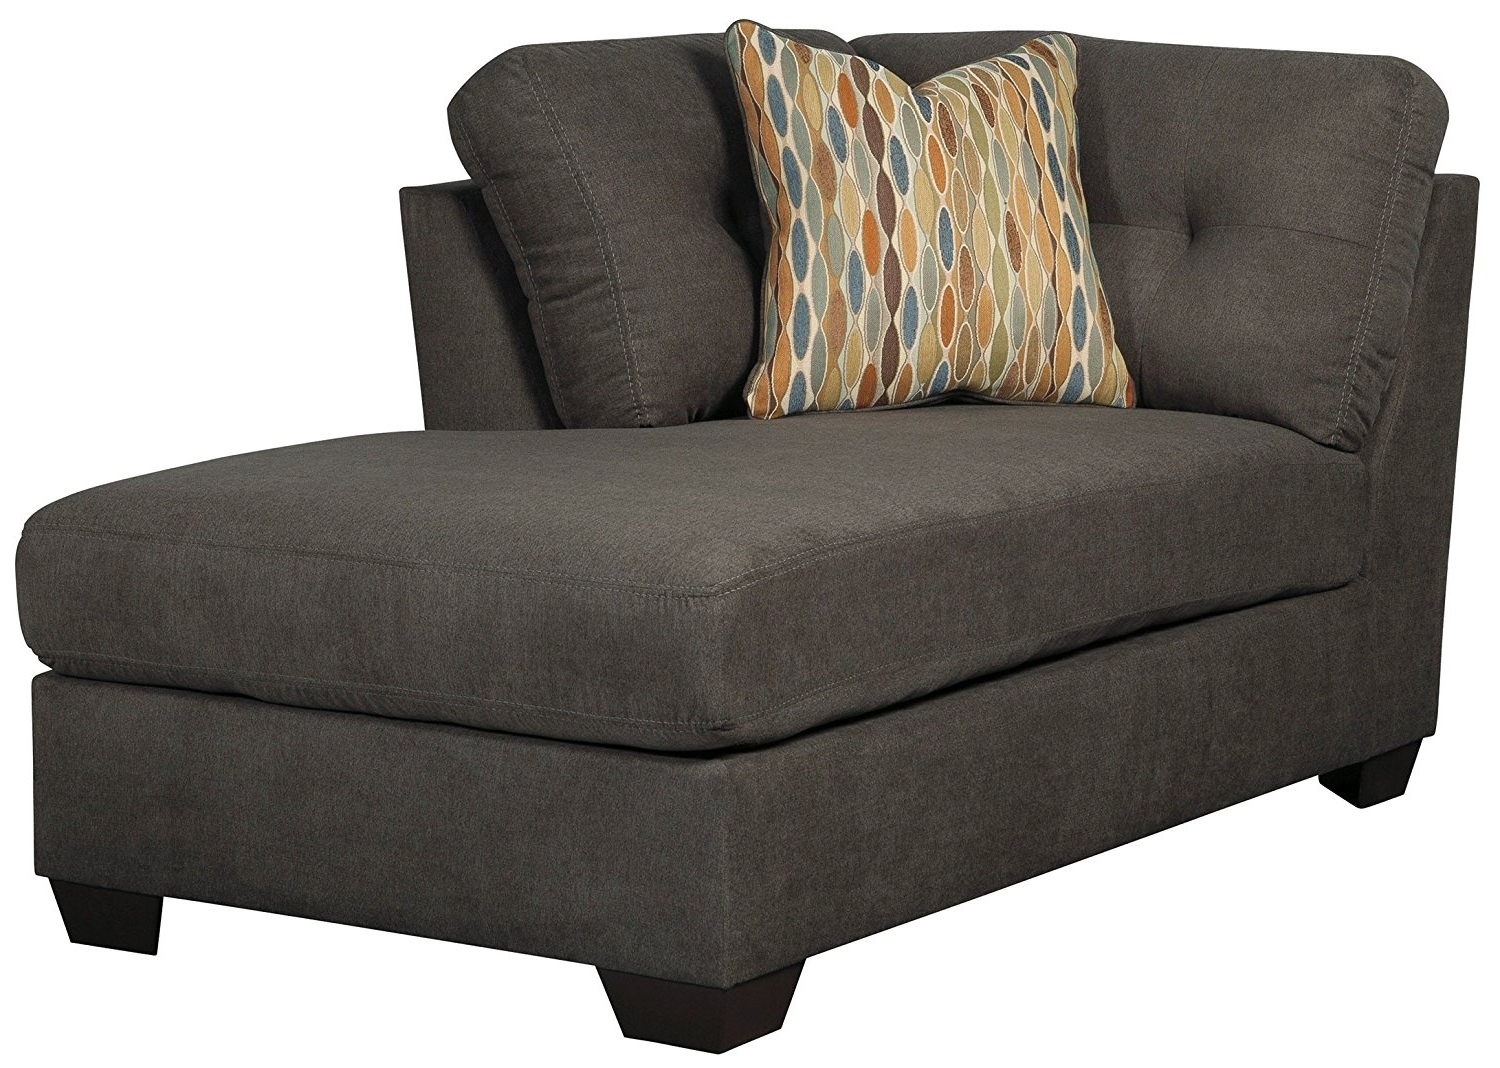 Latest Ashley Chaise Lounges Throughout Amazon: Ashley Furniture Delta City Right Corner Chaise Lounge (View 7 of 15)